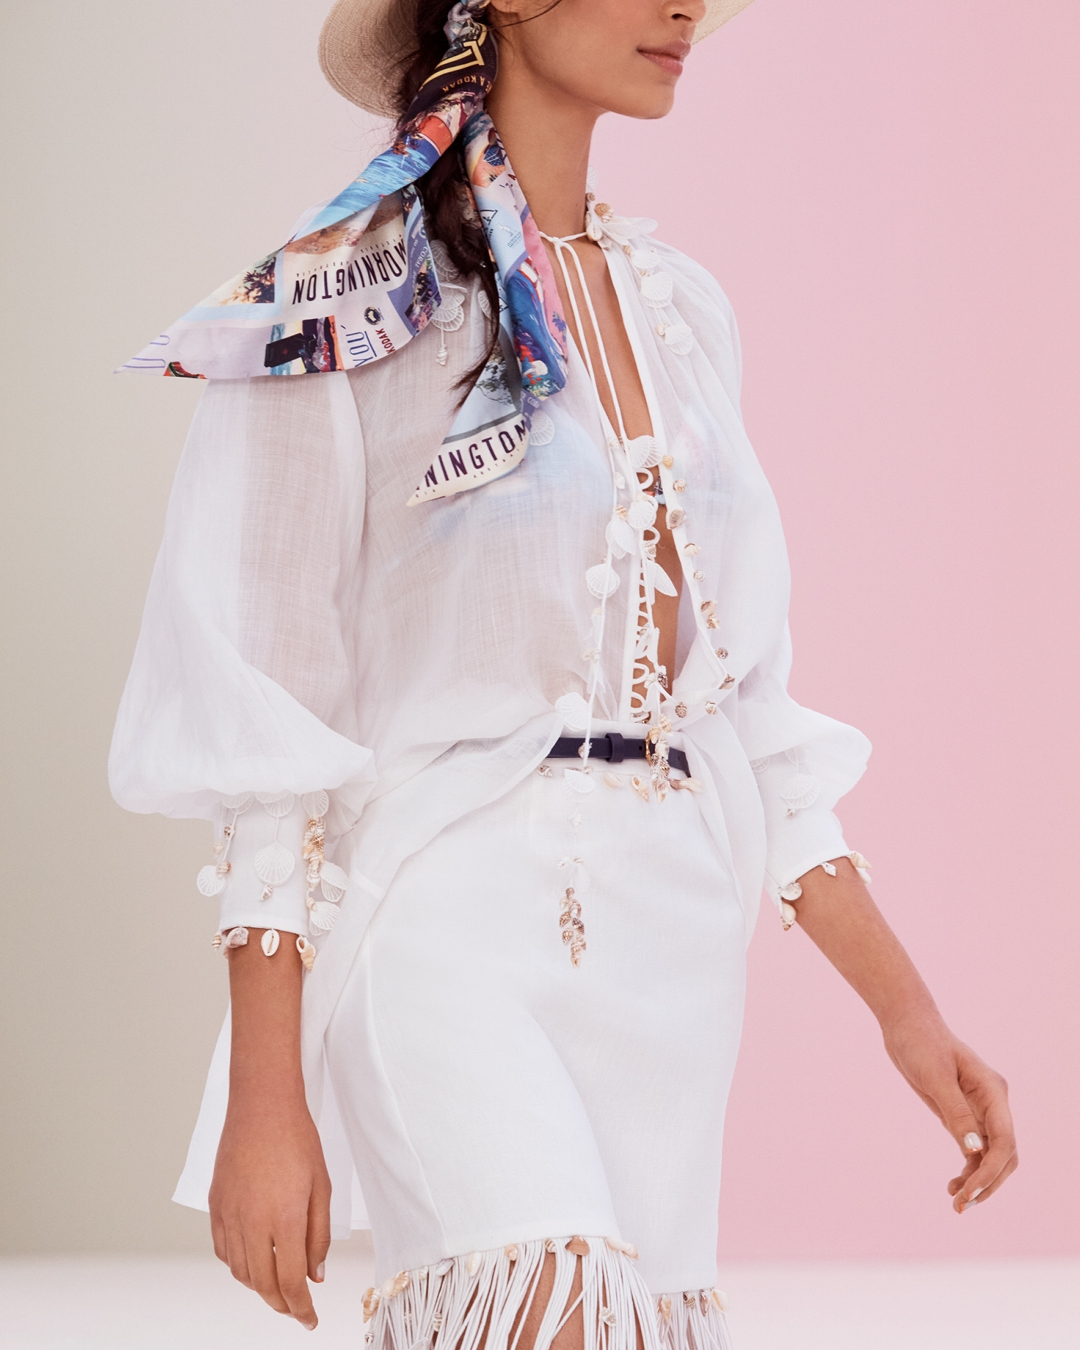 IN THE DETAIL: LOOK 35 RESORT READY TO WEAR 2022, THE POSTCARD